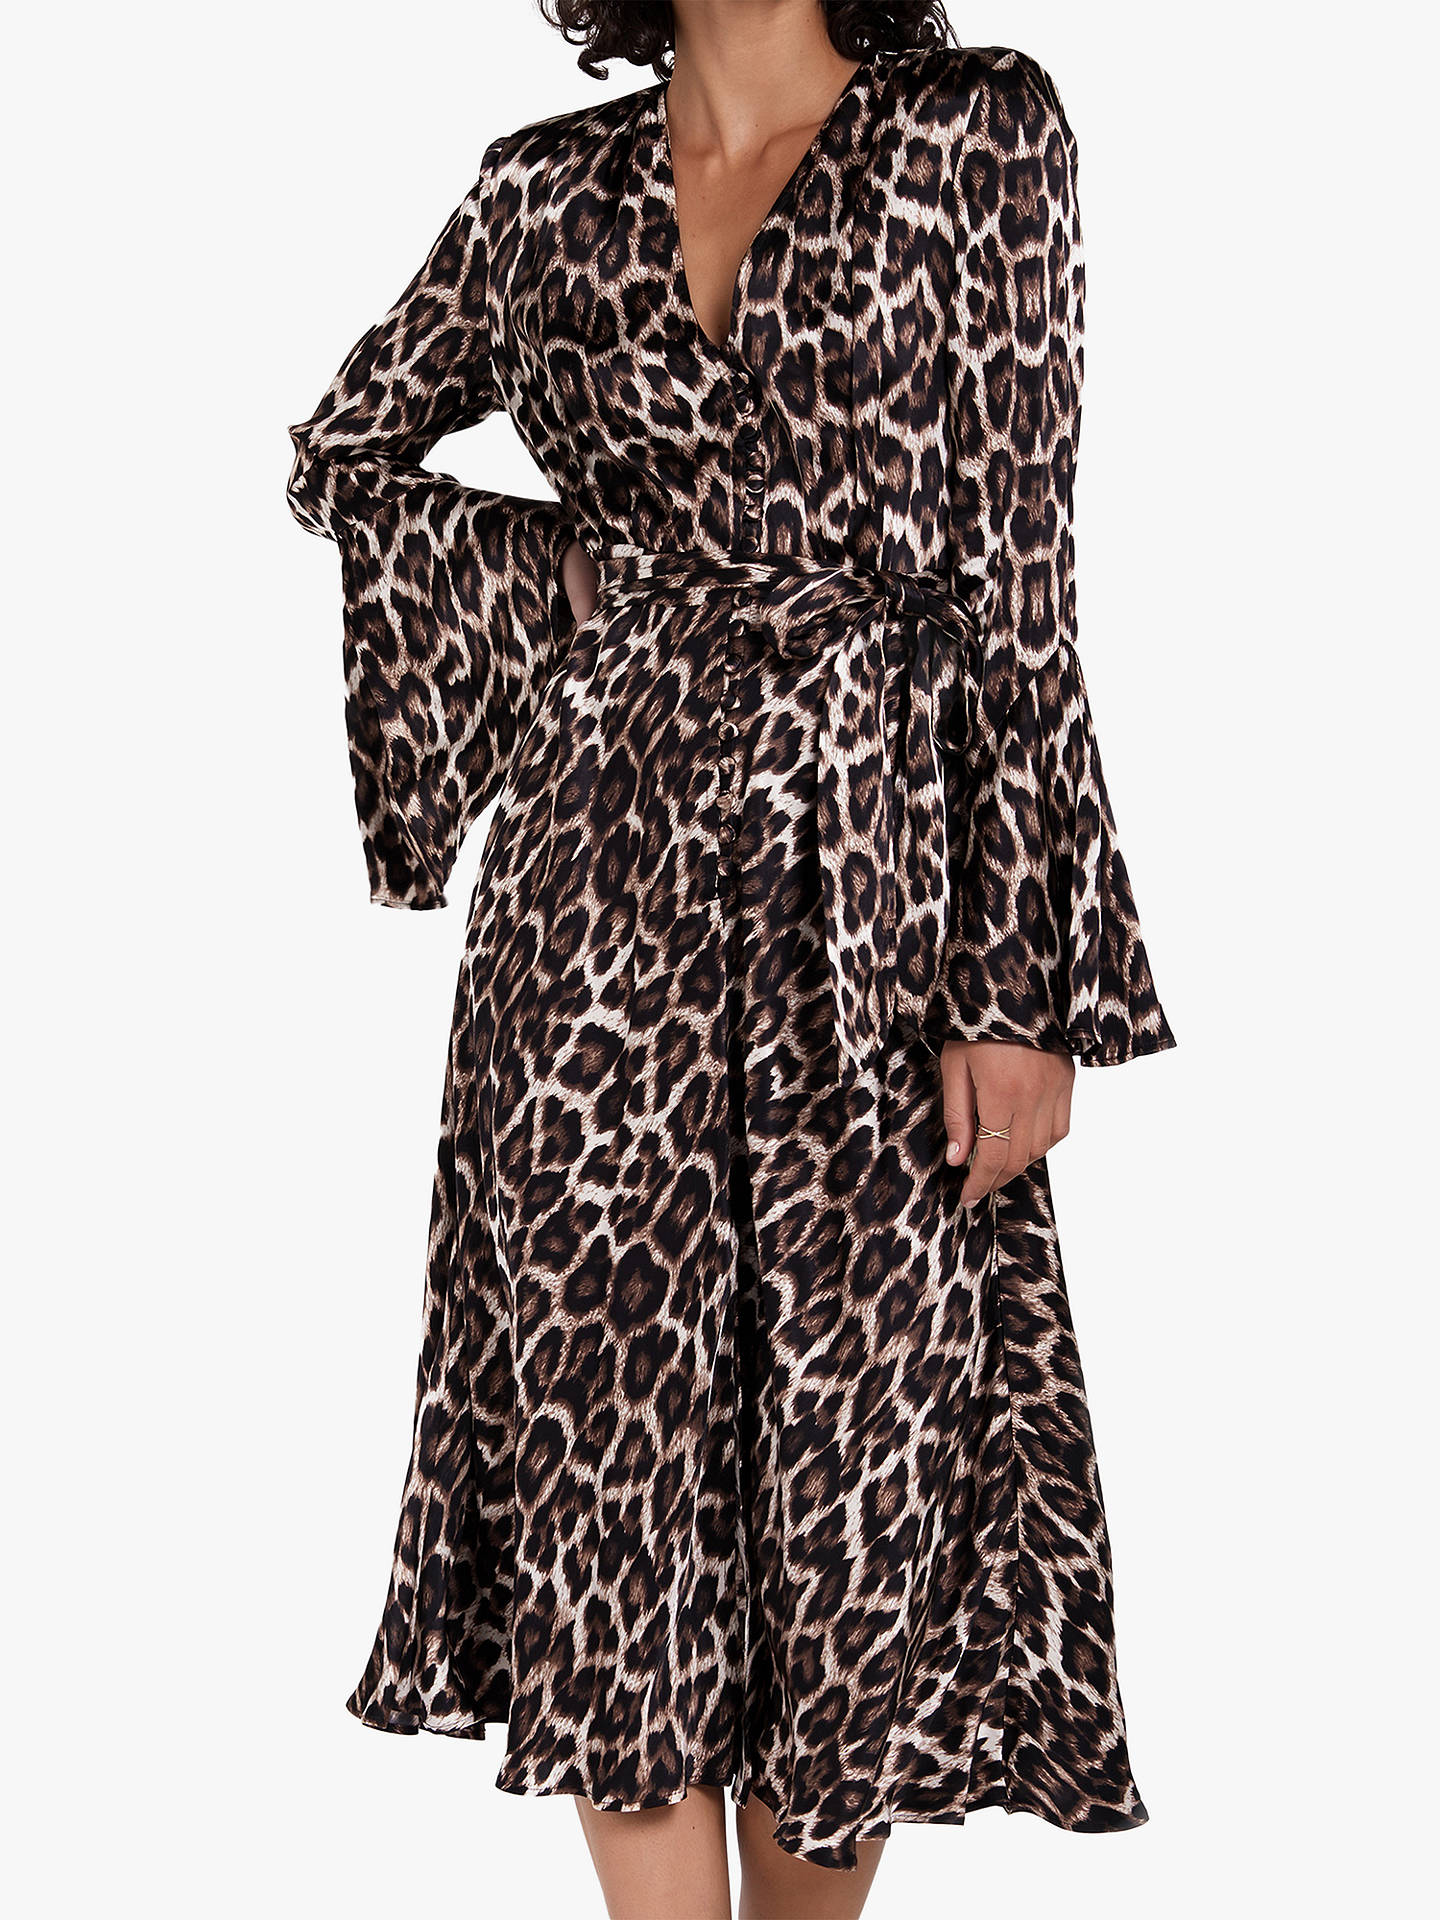 371fc62cced8 Buy Ghost Annabelle Leopard Print Midi Dress, Brown, M Online at  johnlewis.com ...